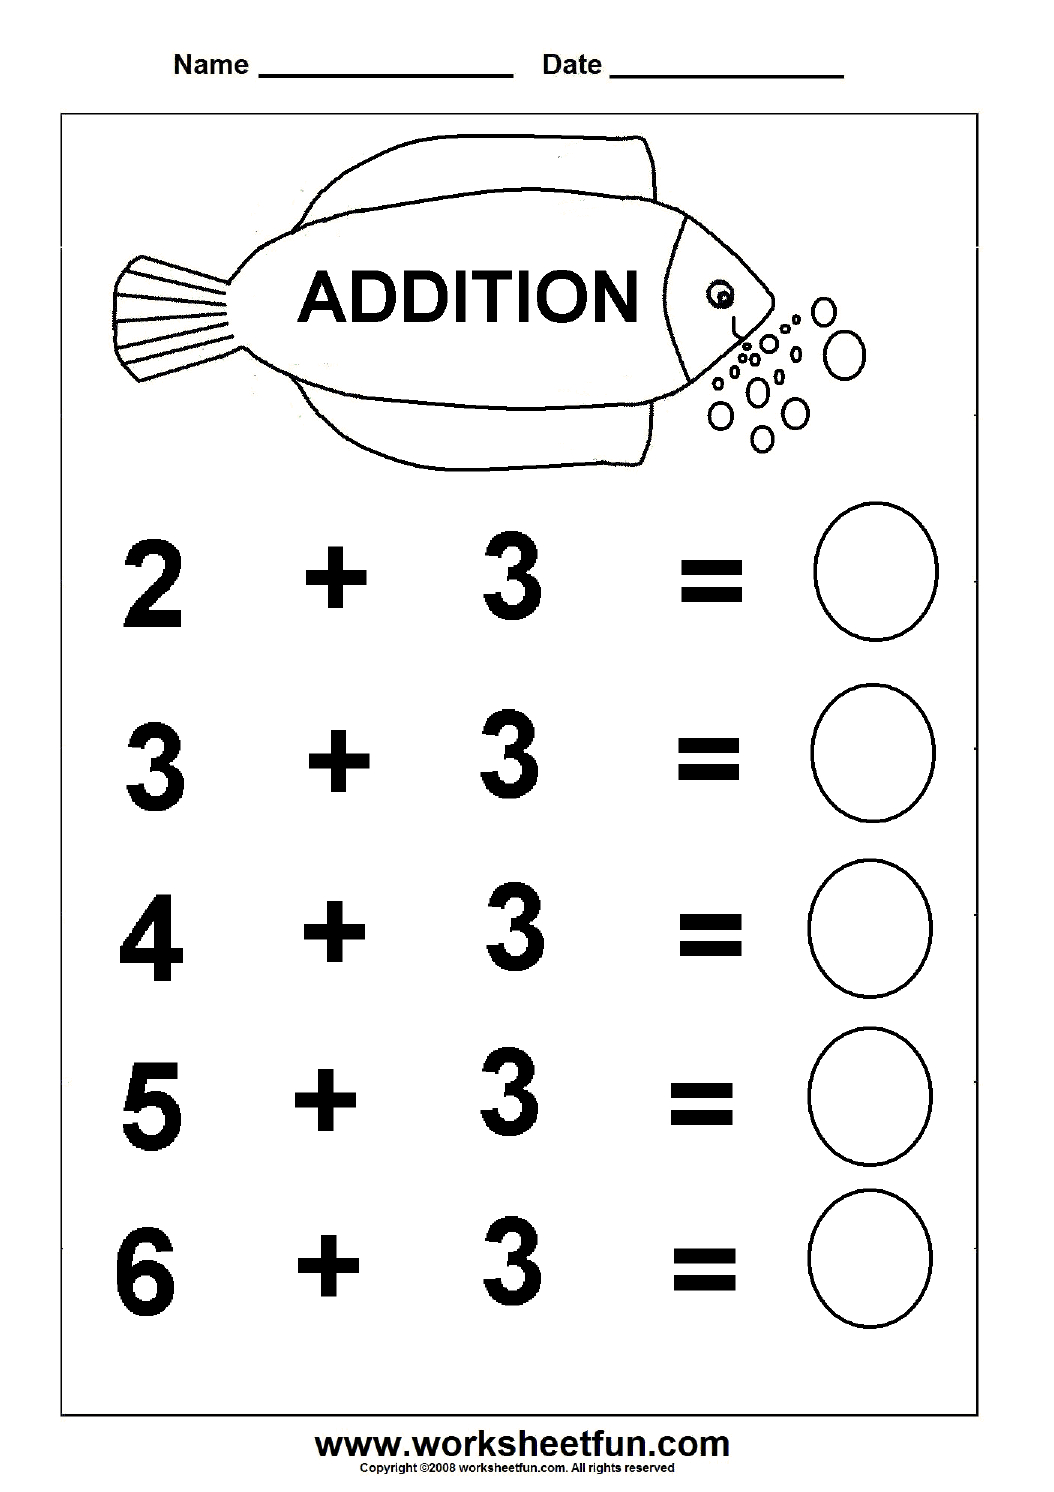 Beginner Addition – 6 Kindergarten Addition Worksheets / Free - Free Printable Preschool Addition Worksheets